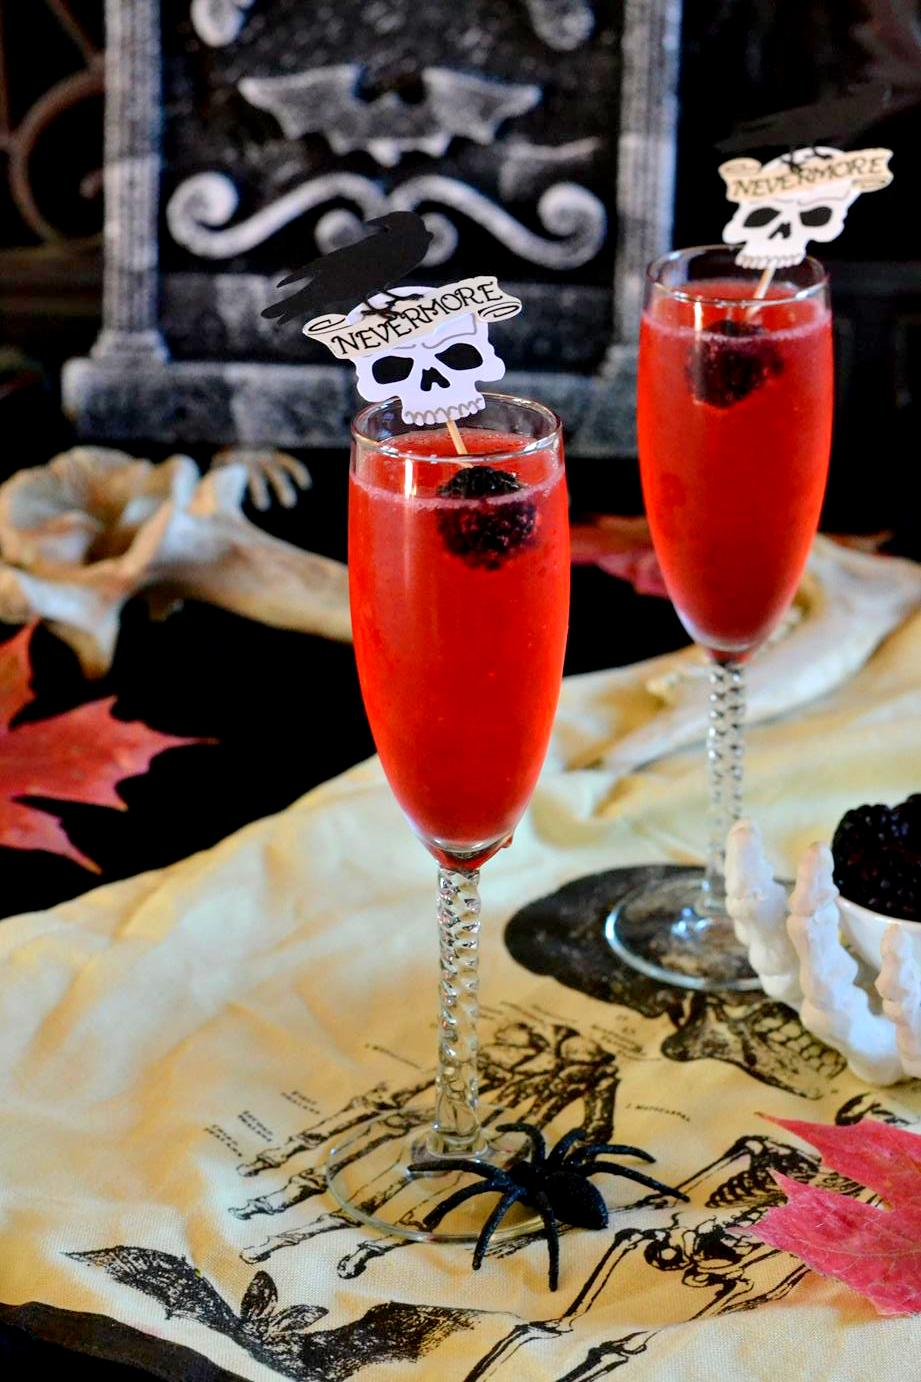 Blackberry Champagne Cemetery Sipper